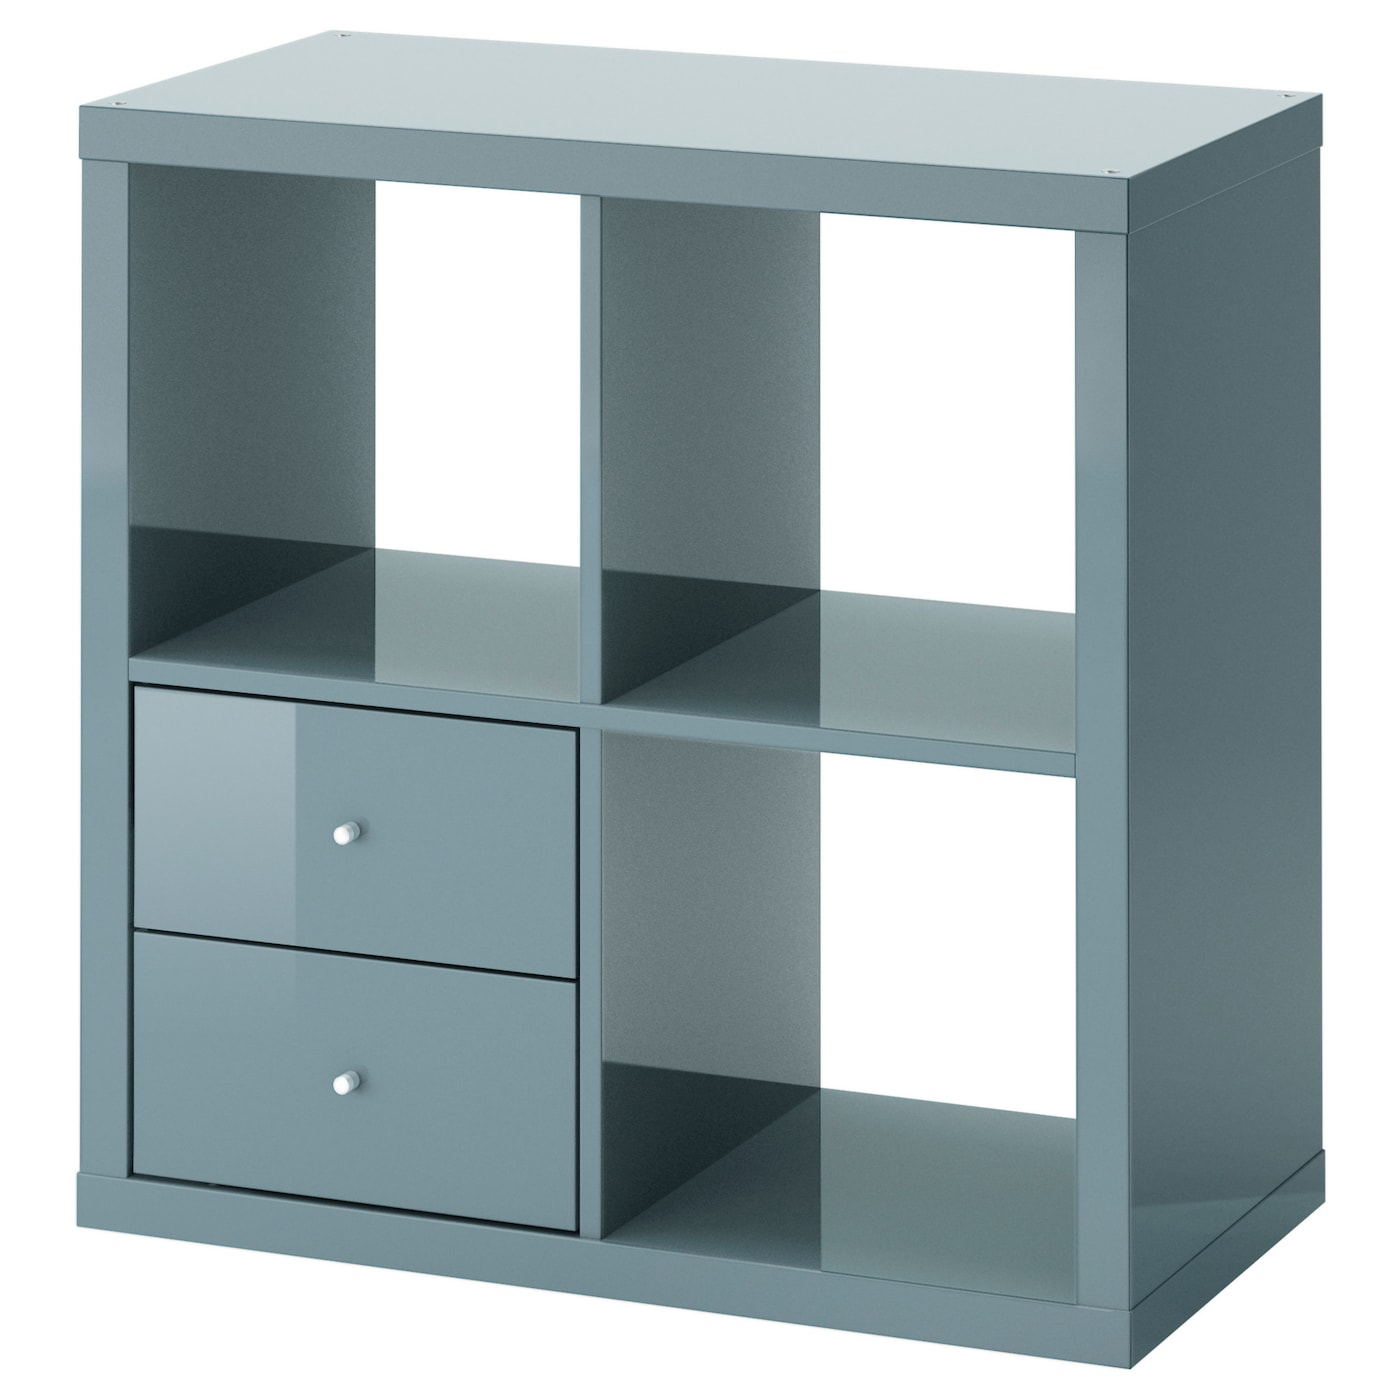 kallax tag re avec tiroirs gris turquoise brillant 77x77 cm ikea. Black Bedroom Furniture Sets. Home Design Ideas